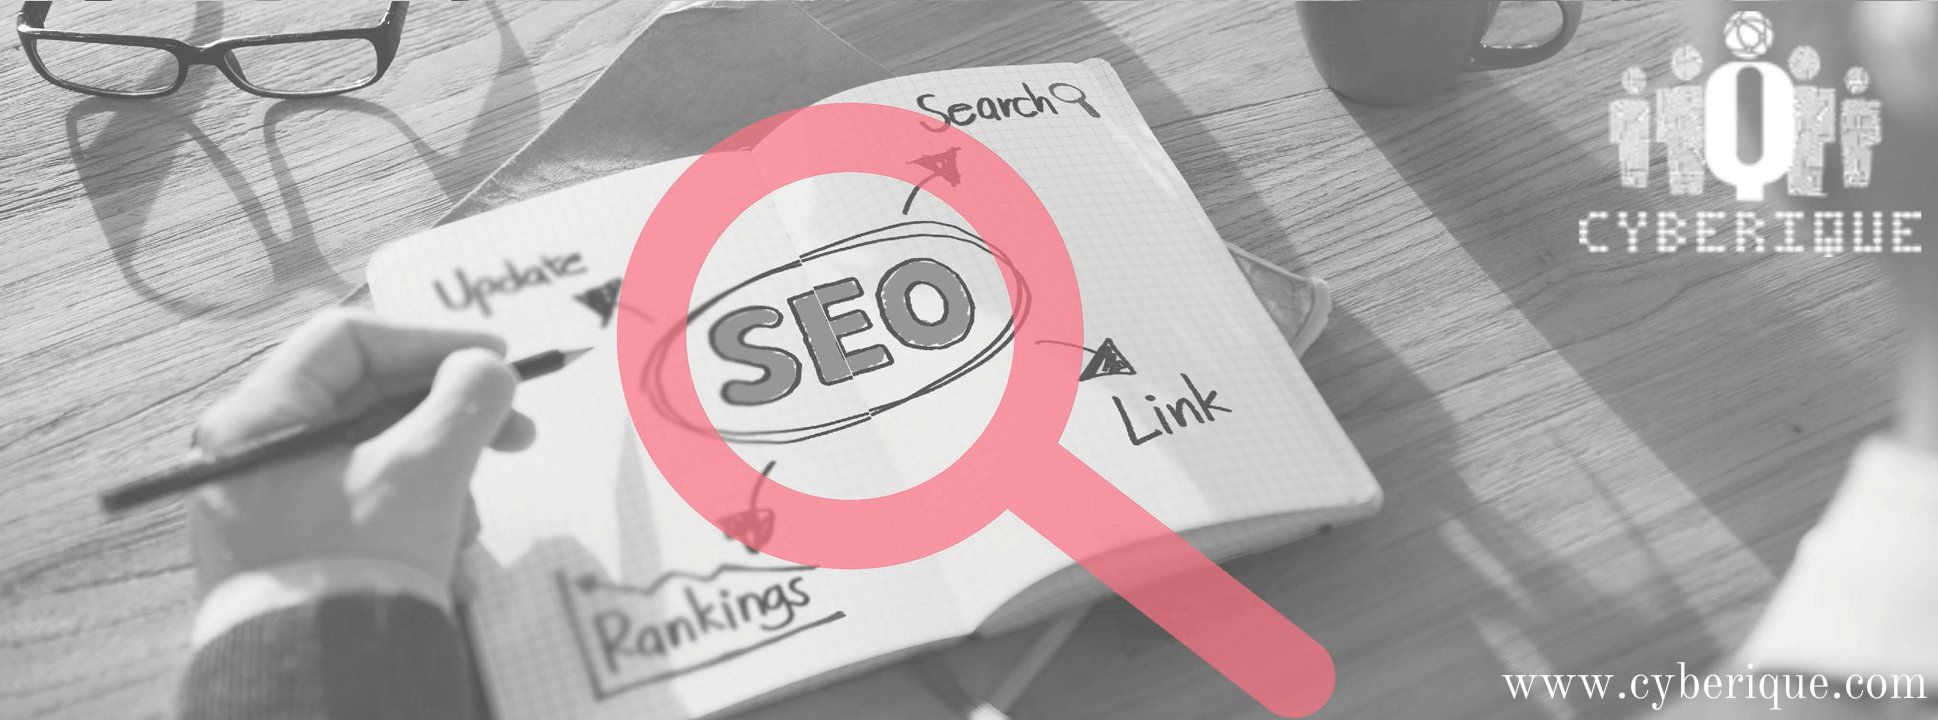 SEO Services Our SEO Services, our target is to make